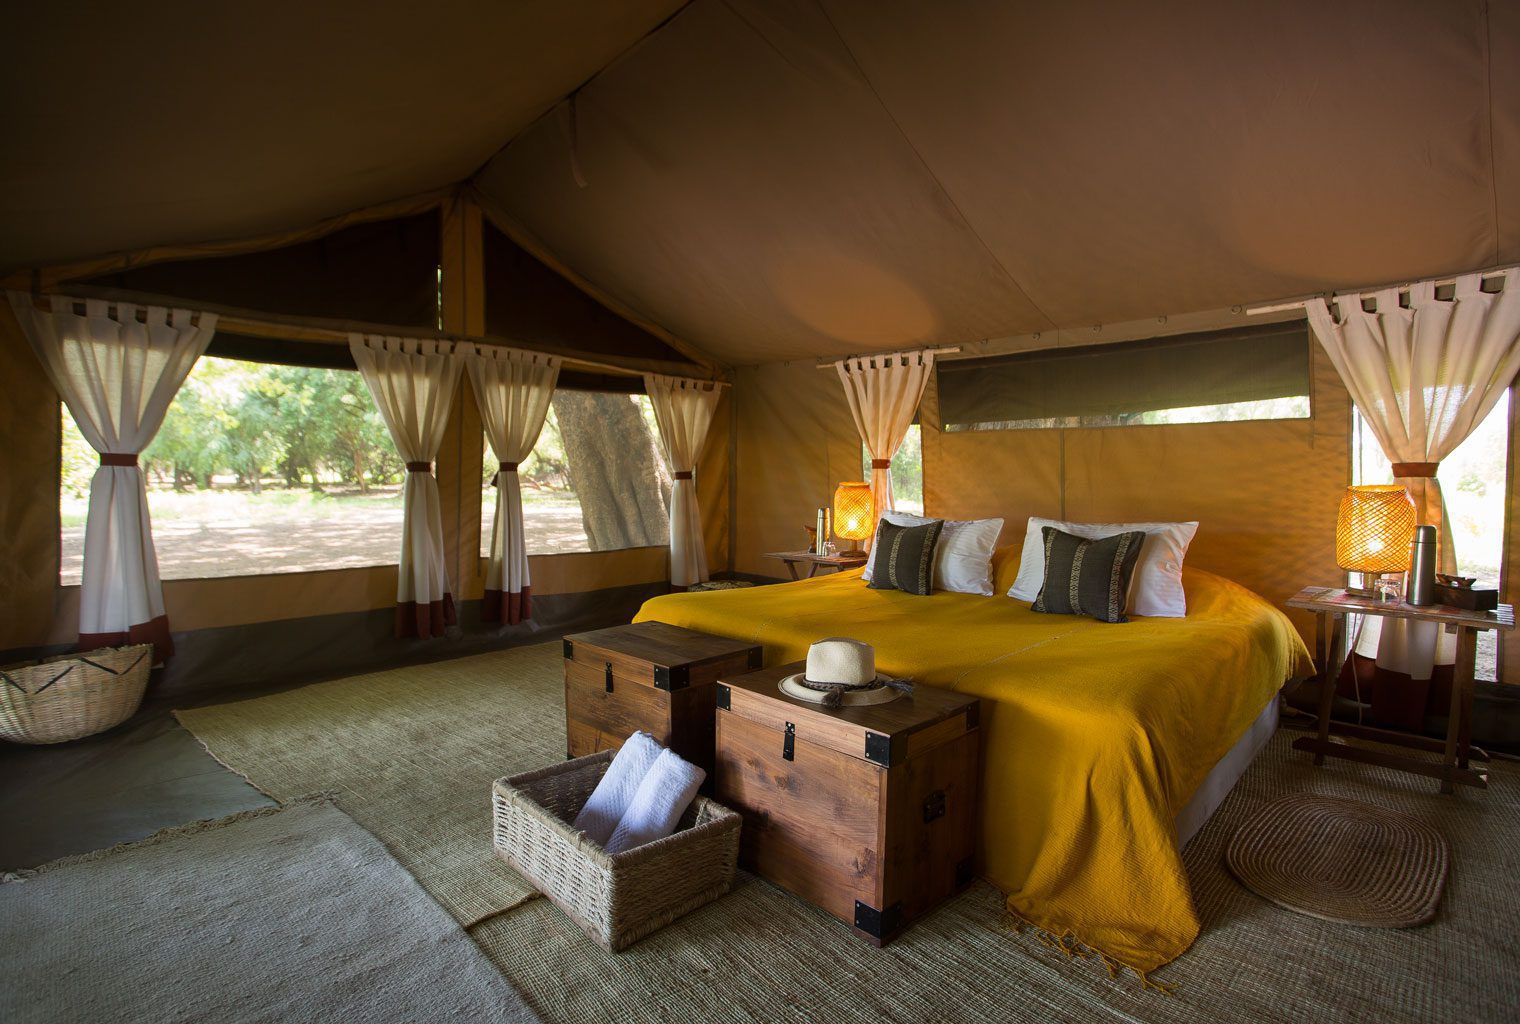 interior view of Lales camp canvas tent with yellow bedspread in the omo valley